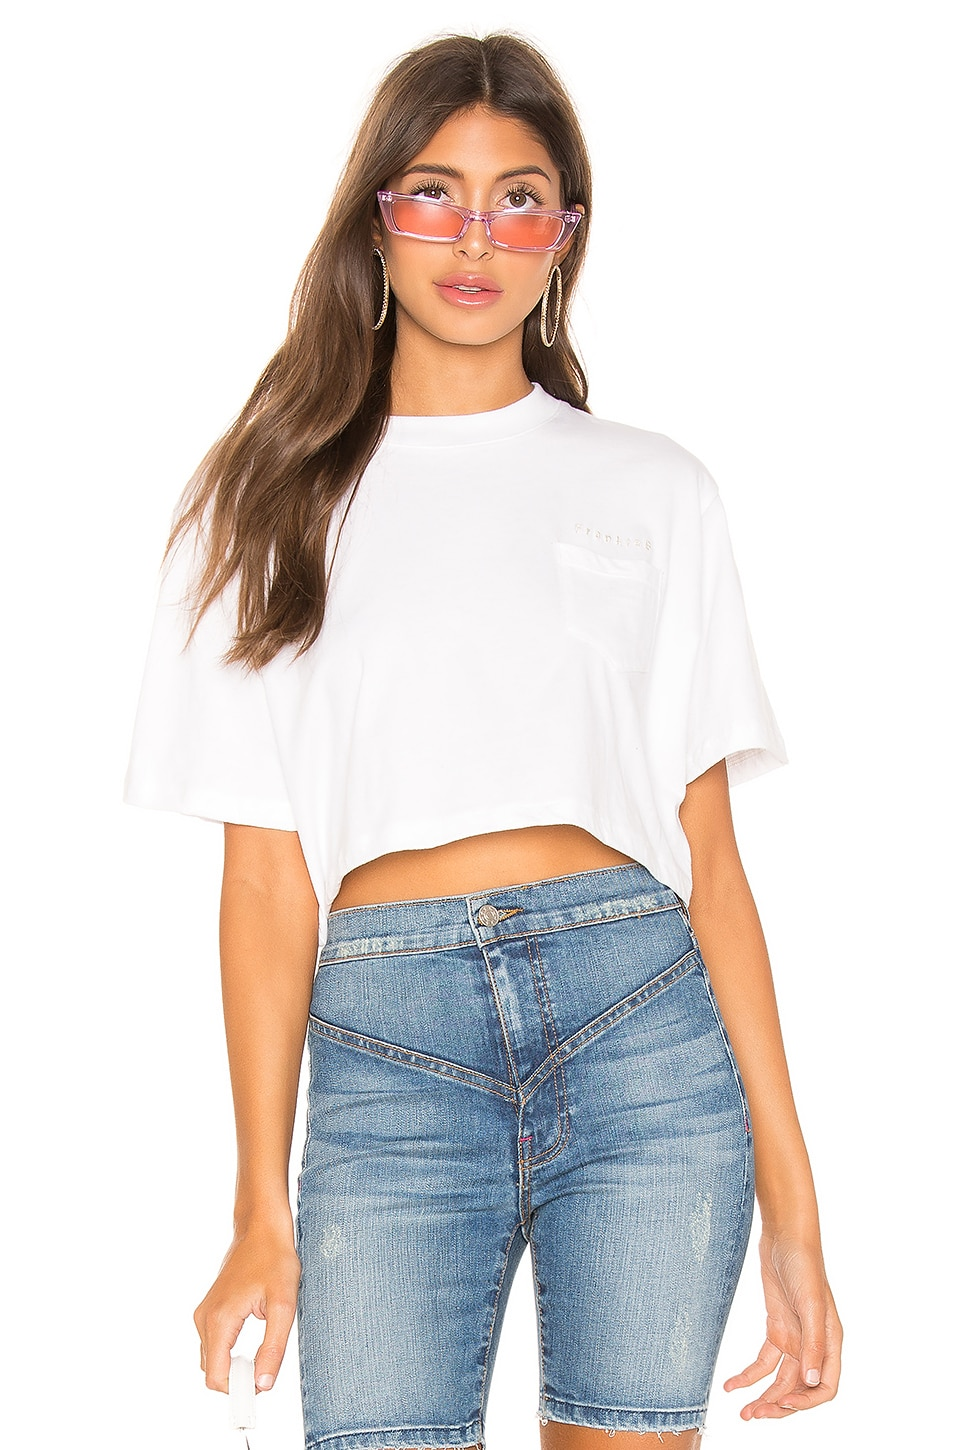 Frankie B Naomi Cropped Short Sleeve Tee in White